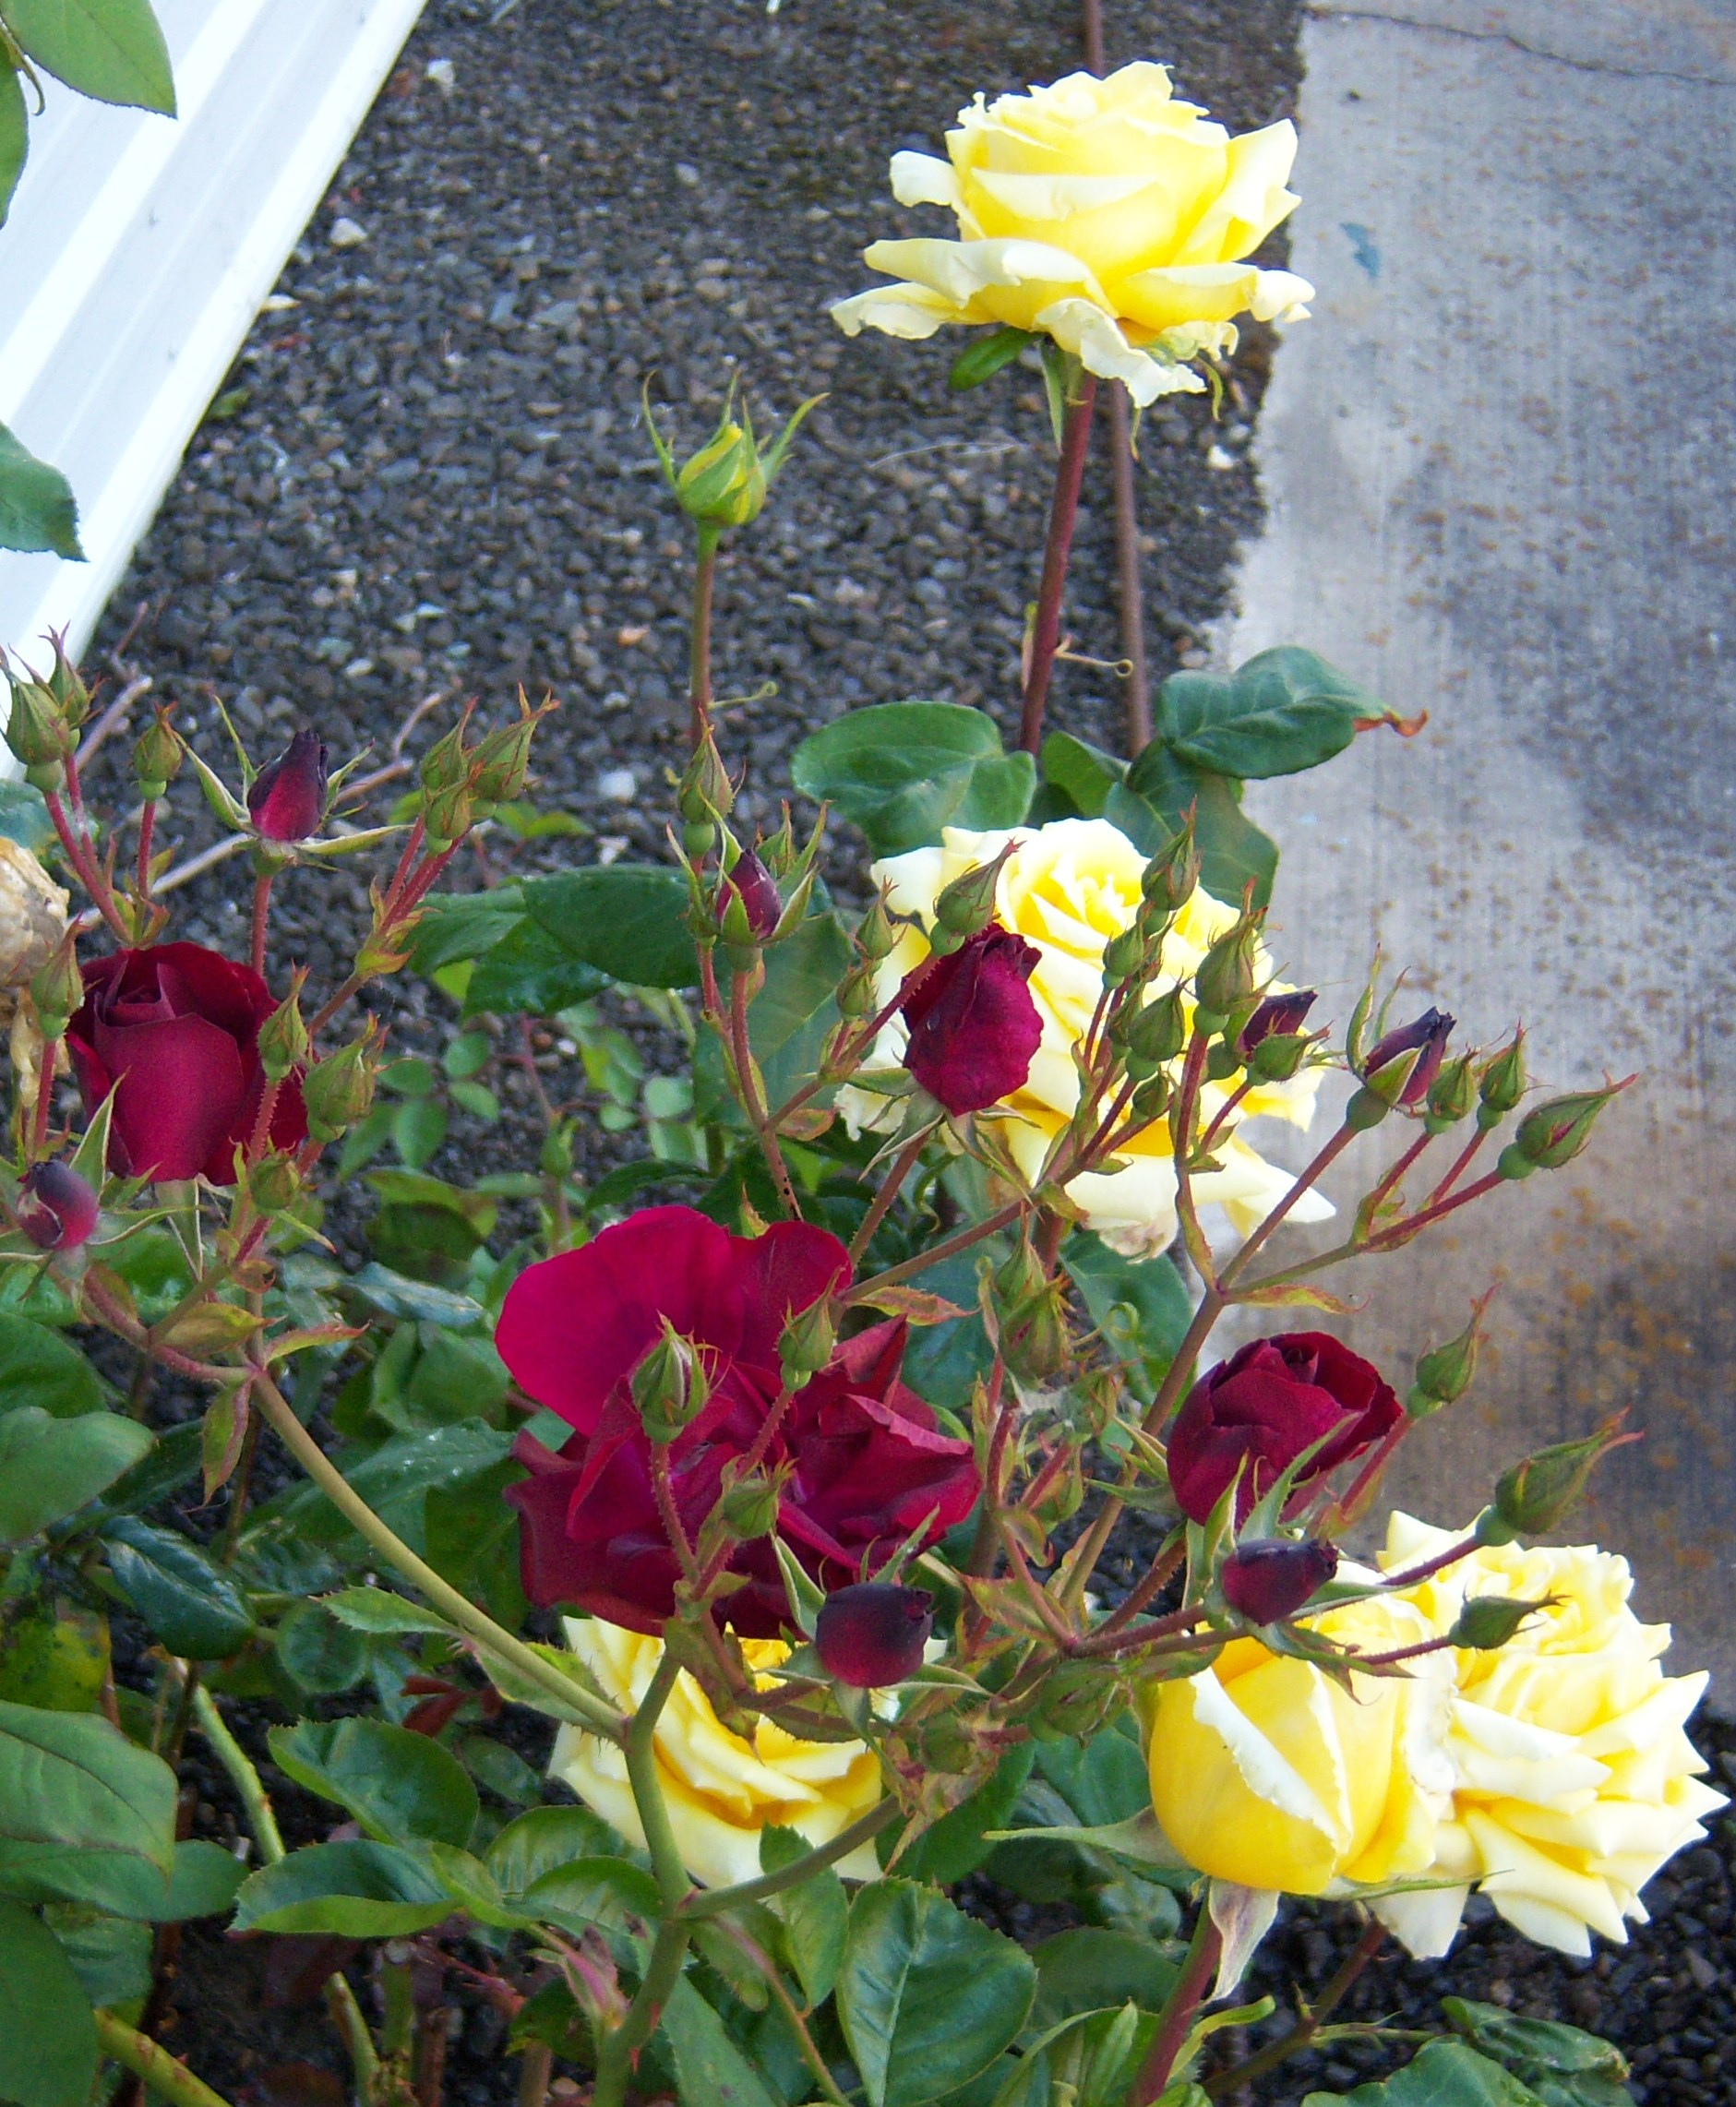 Red Roses - A Gift from EROS - 11-13-11